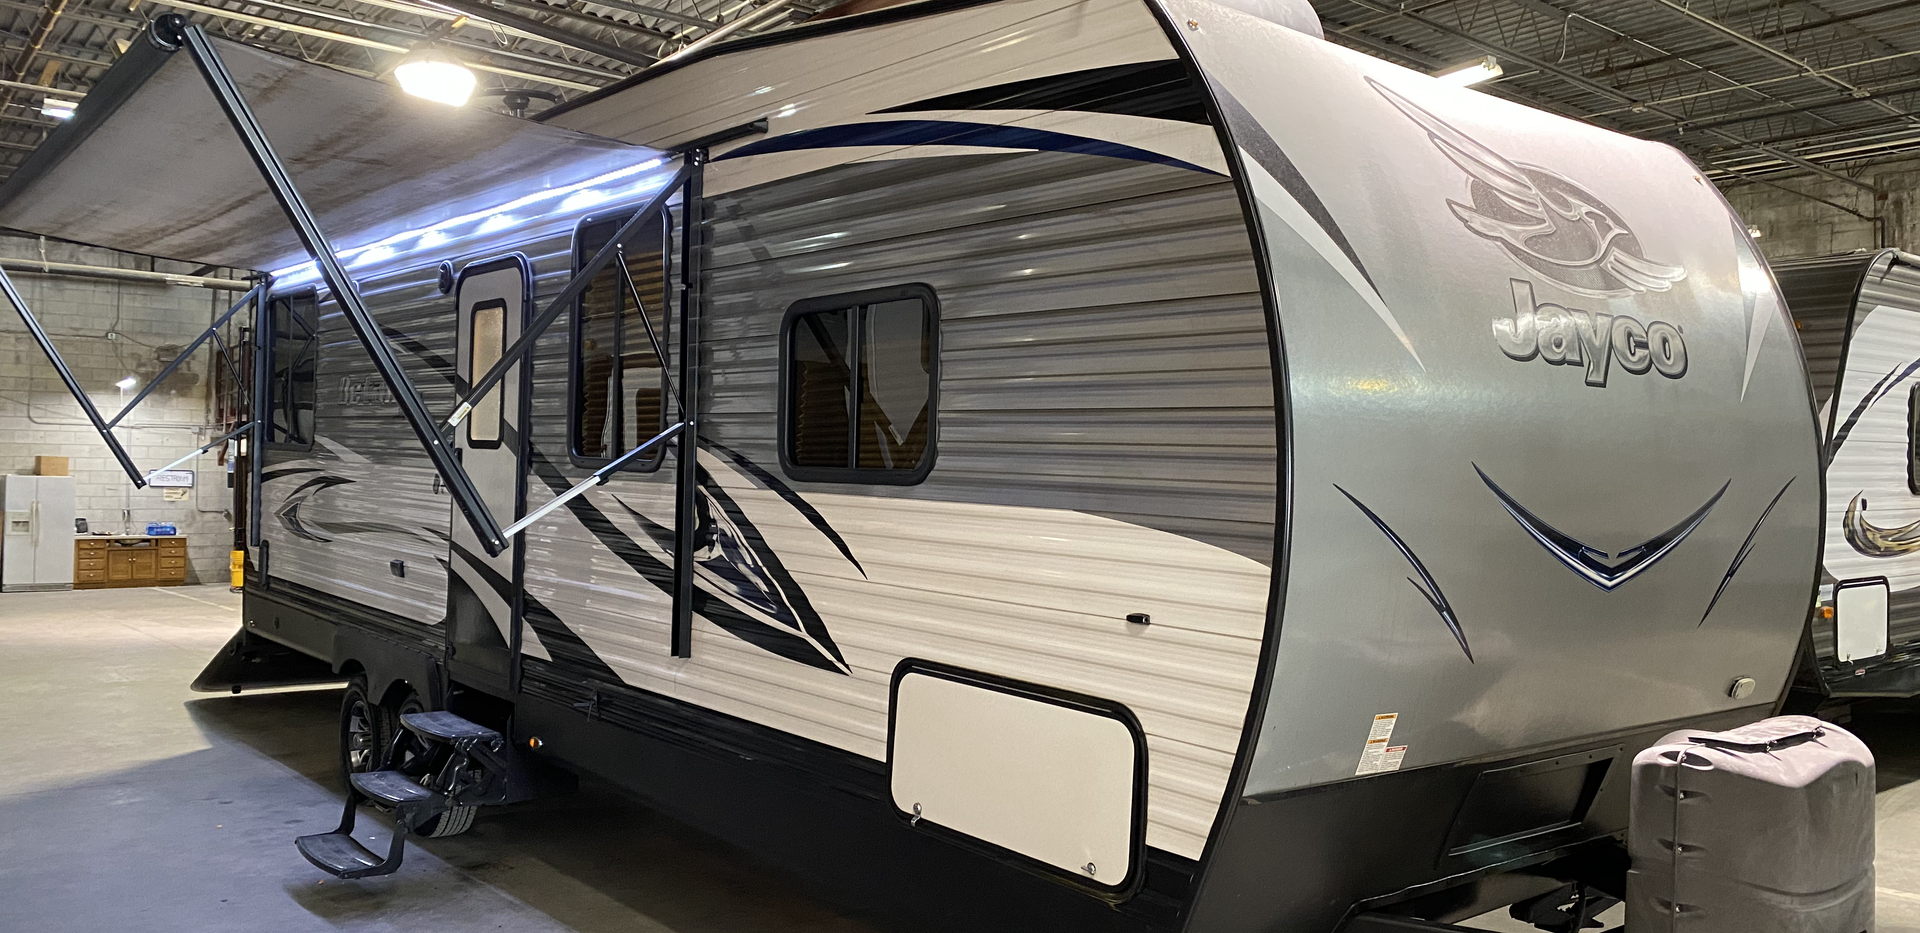 2018 Jayco Octane Toyhauler!! Model number is 273. The camper is 27 feet long. Dry weight is 6900 pounds. Has a big electric awning and manual jacks. Does have a fuel station. Back door is 93 inches wide. 78 inches tall and it is 12 feet to the front of the fridge, and 8 feet to the counter. It is very nice inside and out! Bed drops down in the back to make two beds. Up front is a private bedroom with full bathroom. Super nice camper inside and out. Drop down screen when the door is down. Rear flood lights. Camper does have a rebuilt title from hail.. Very light dings. Priced at $17800.